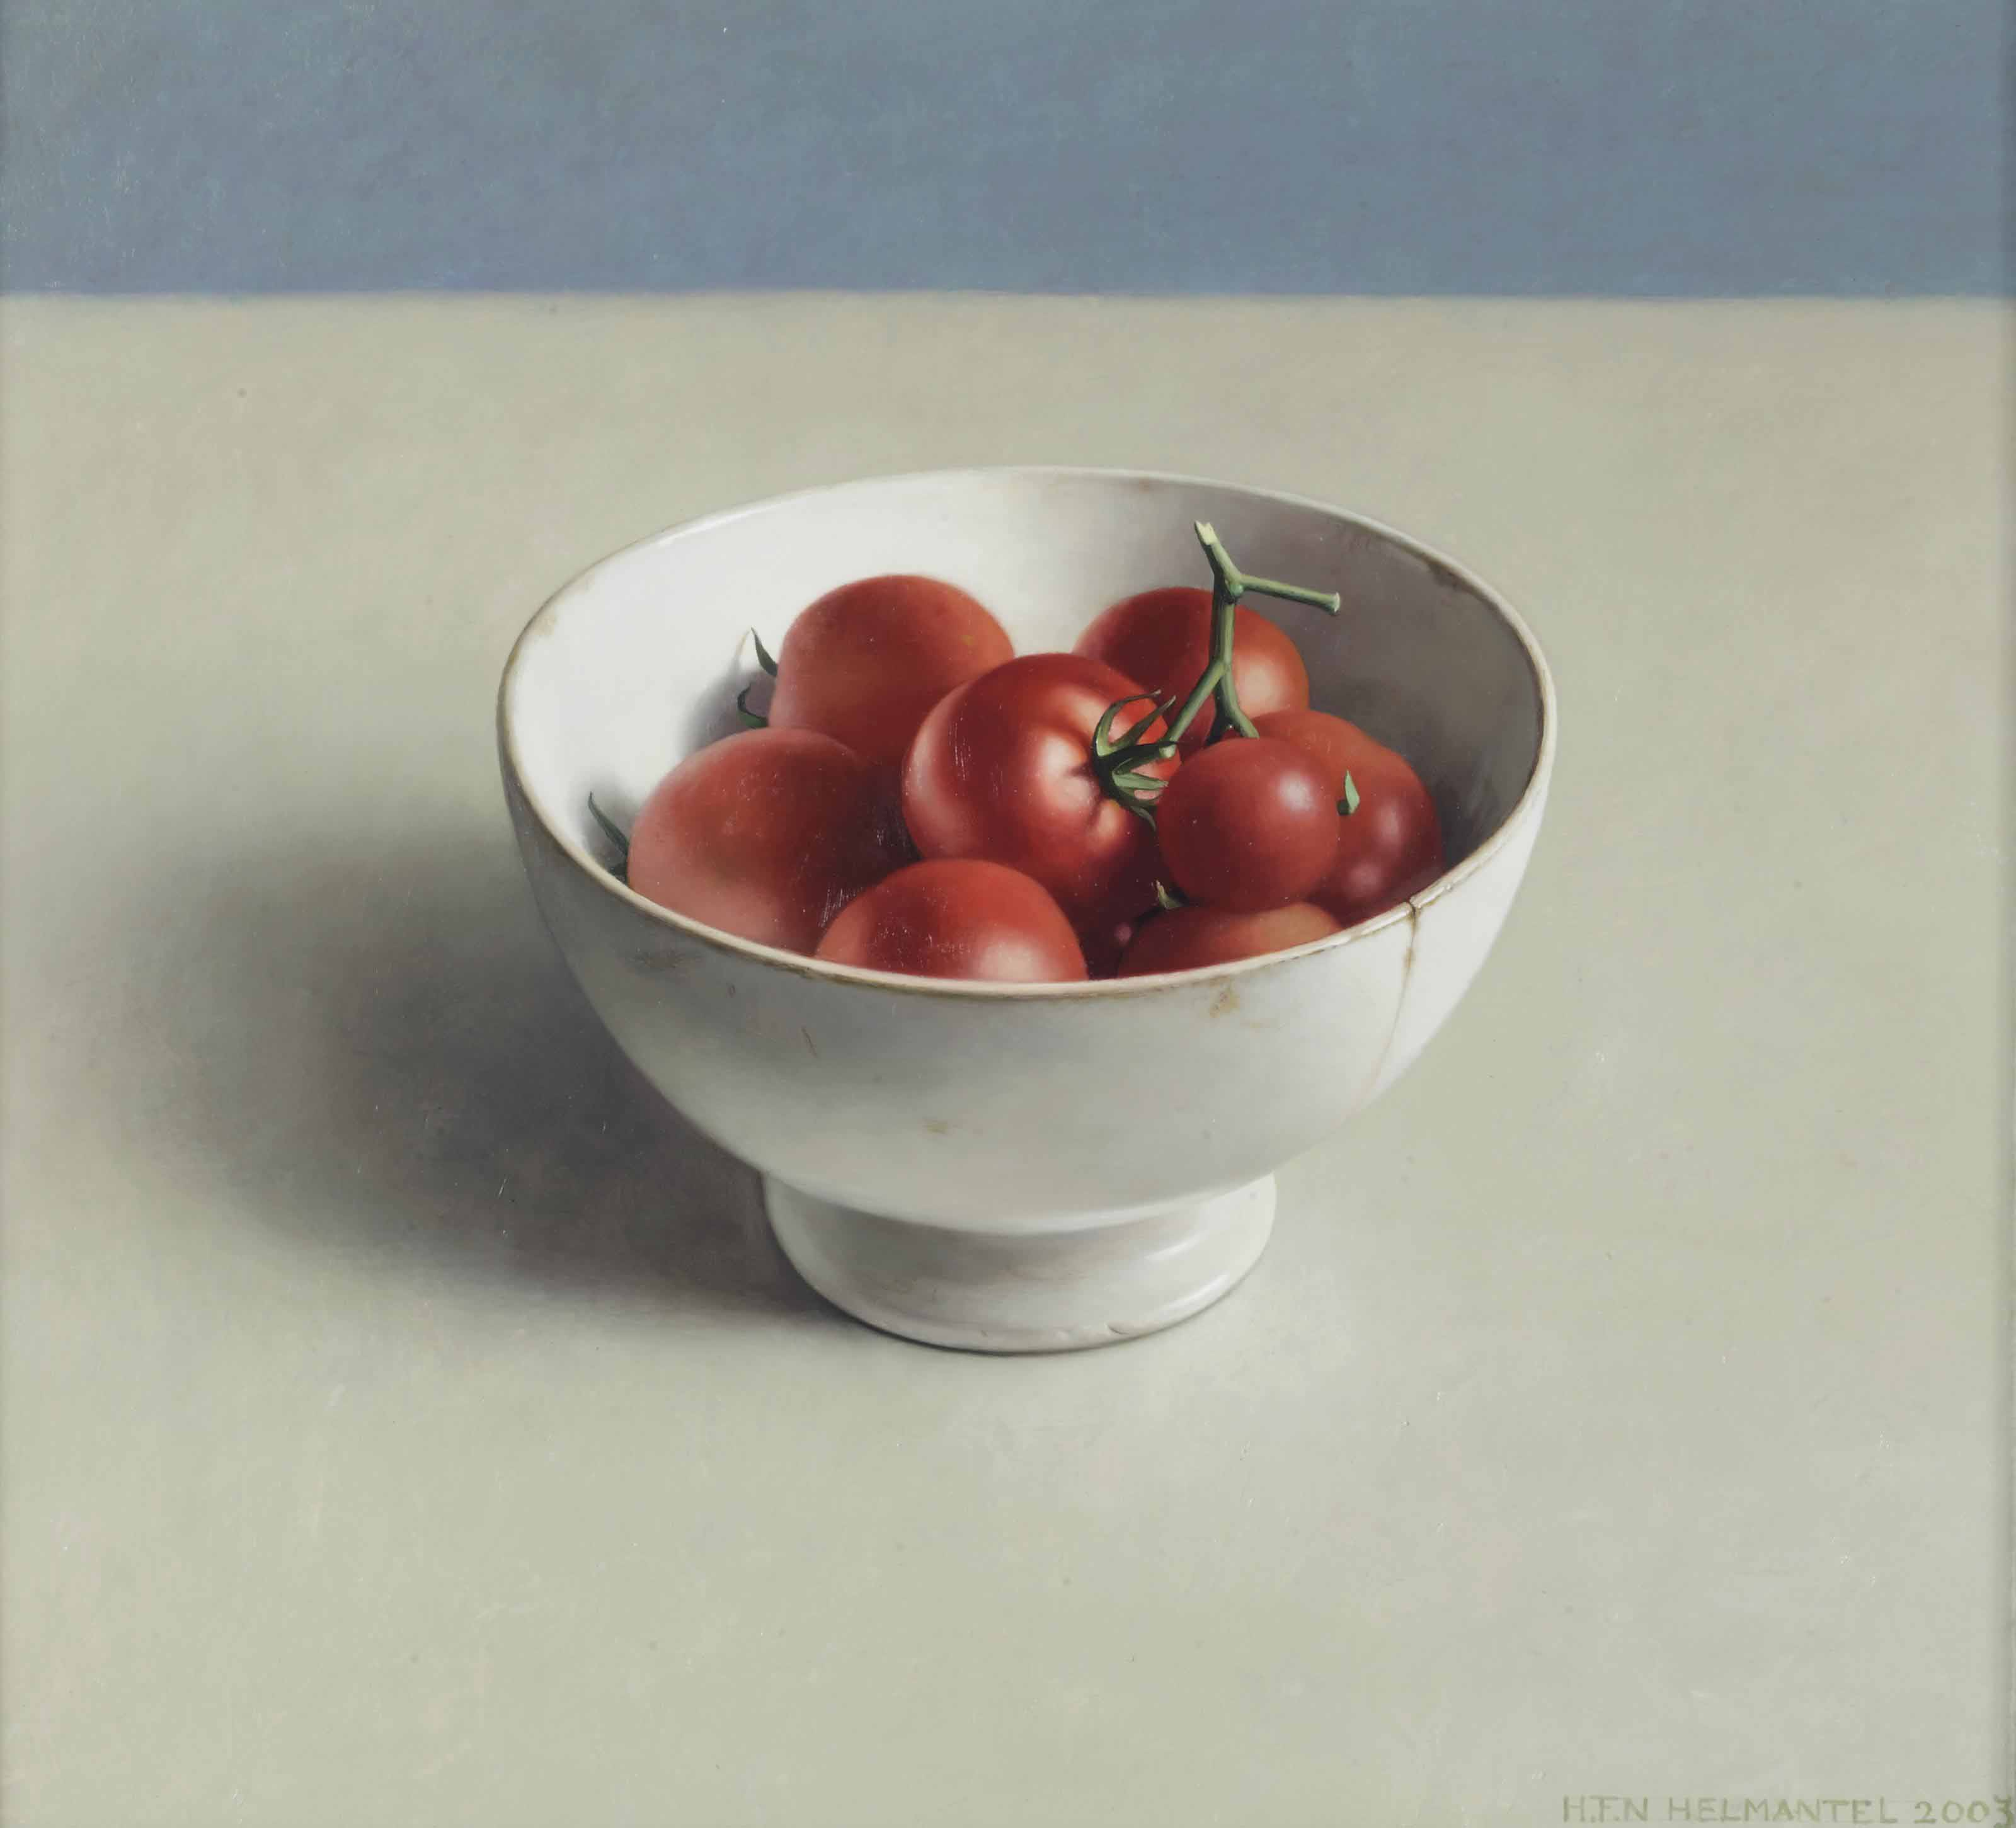 Helmantel Museum Henk Helmantel (b. 1945) , A Still Life With Tomatoes In A